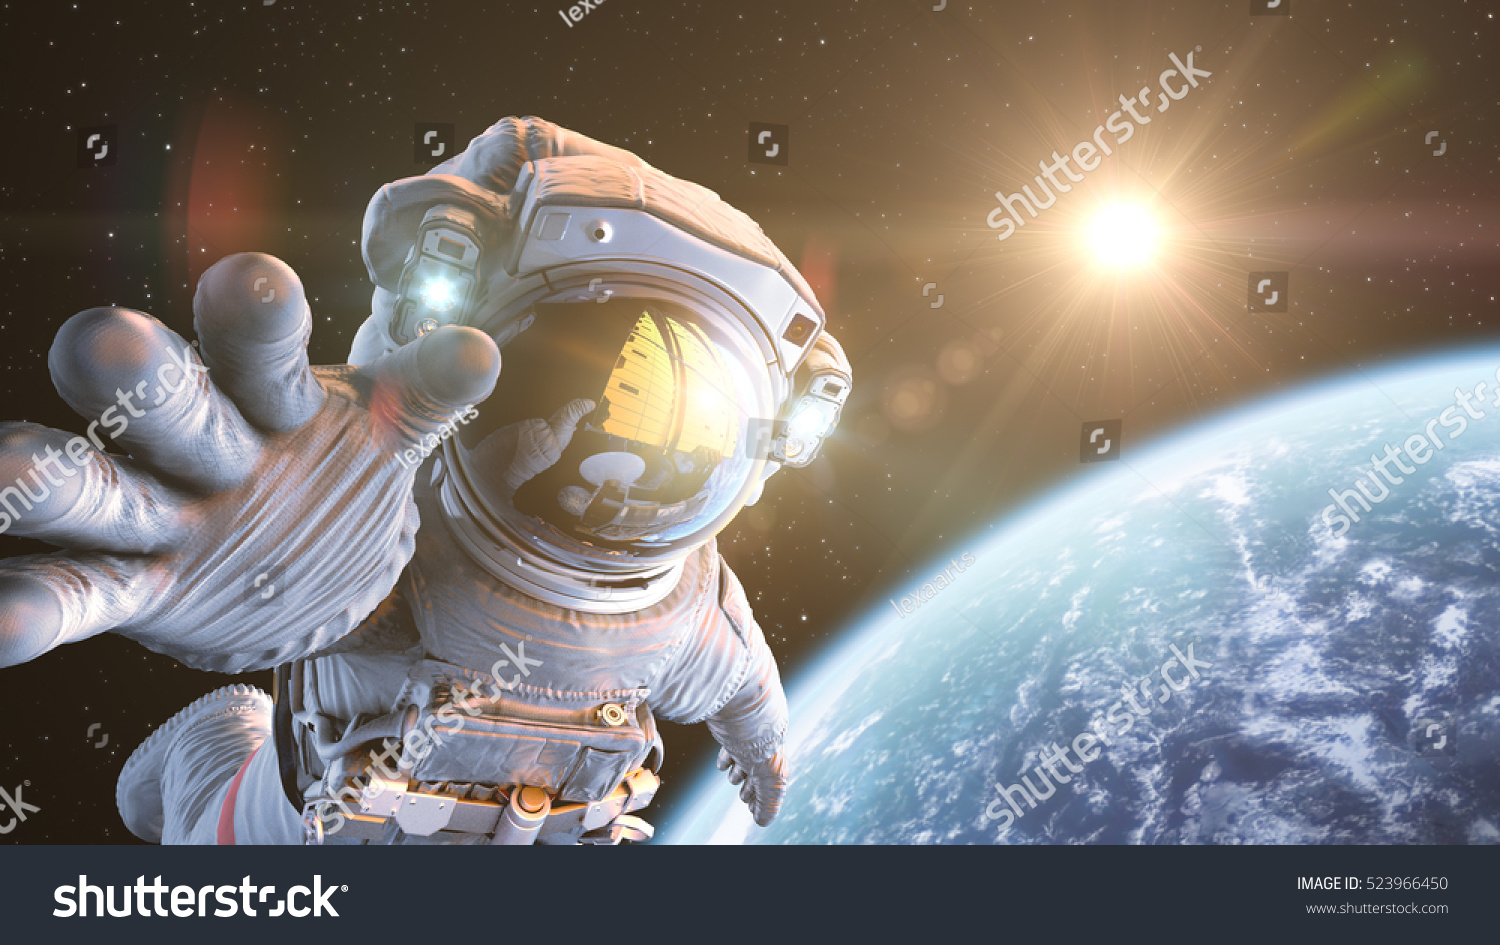 Astronaut outer space 3d render stock illustration for Outer space 3d model